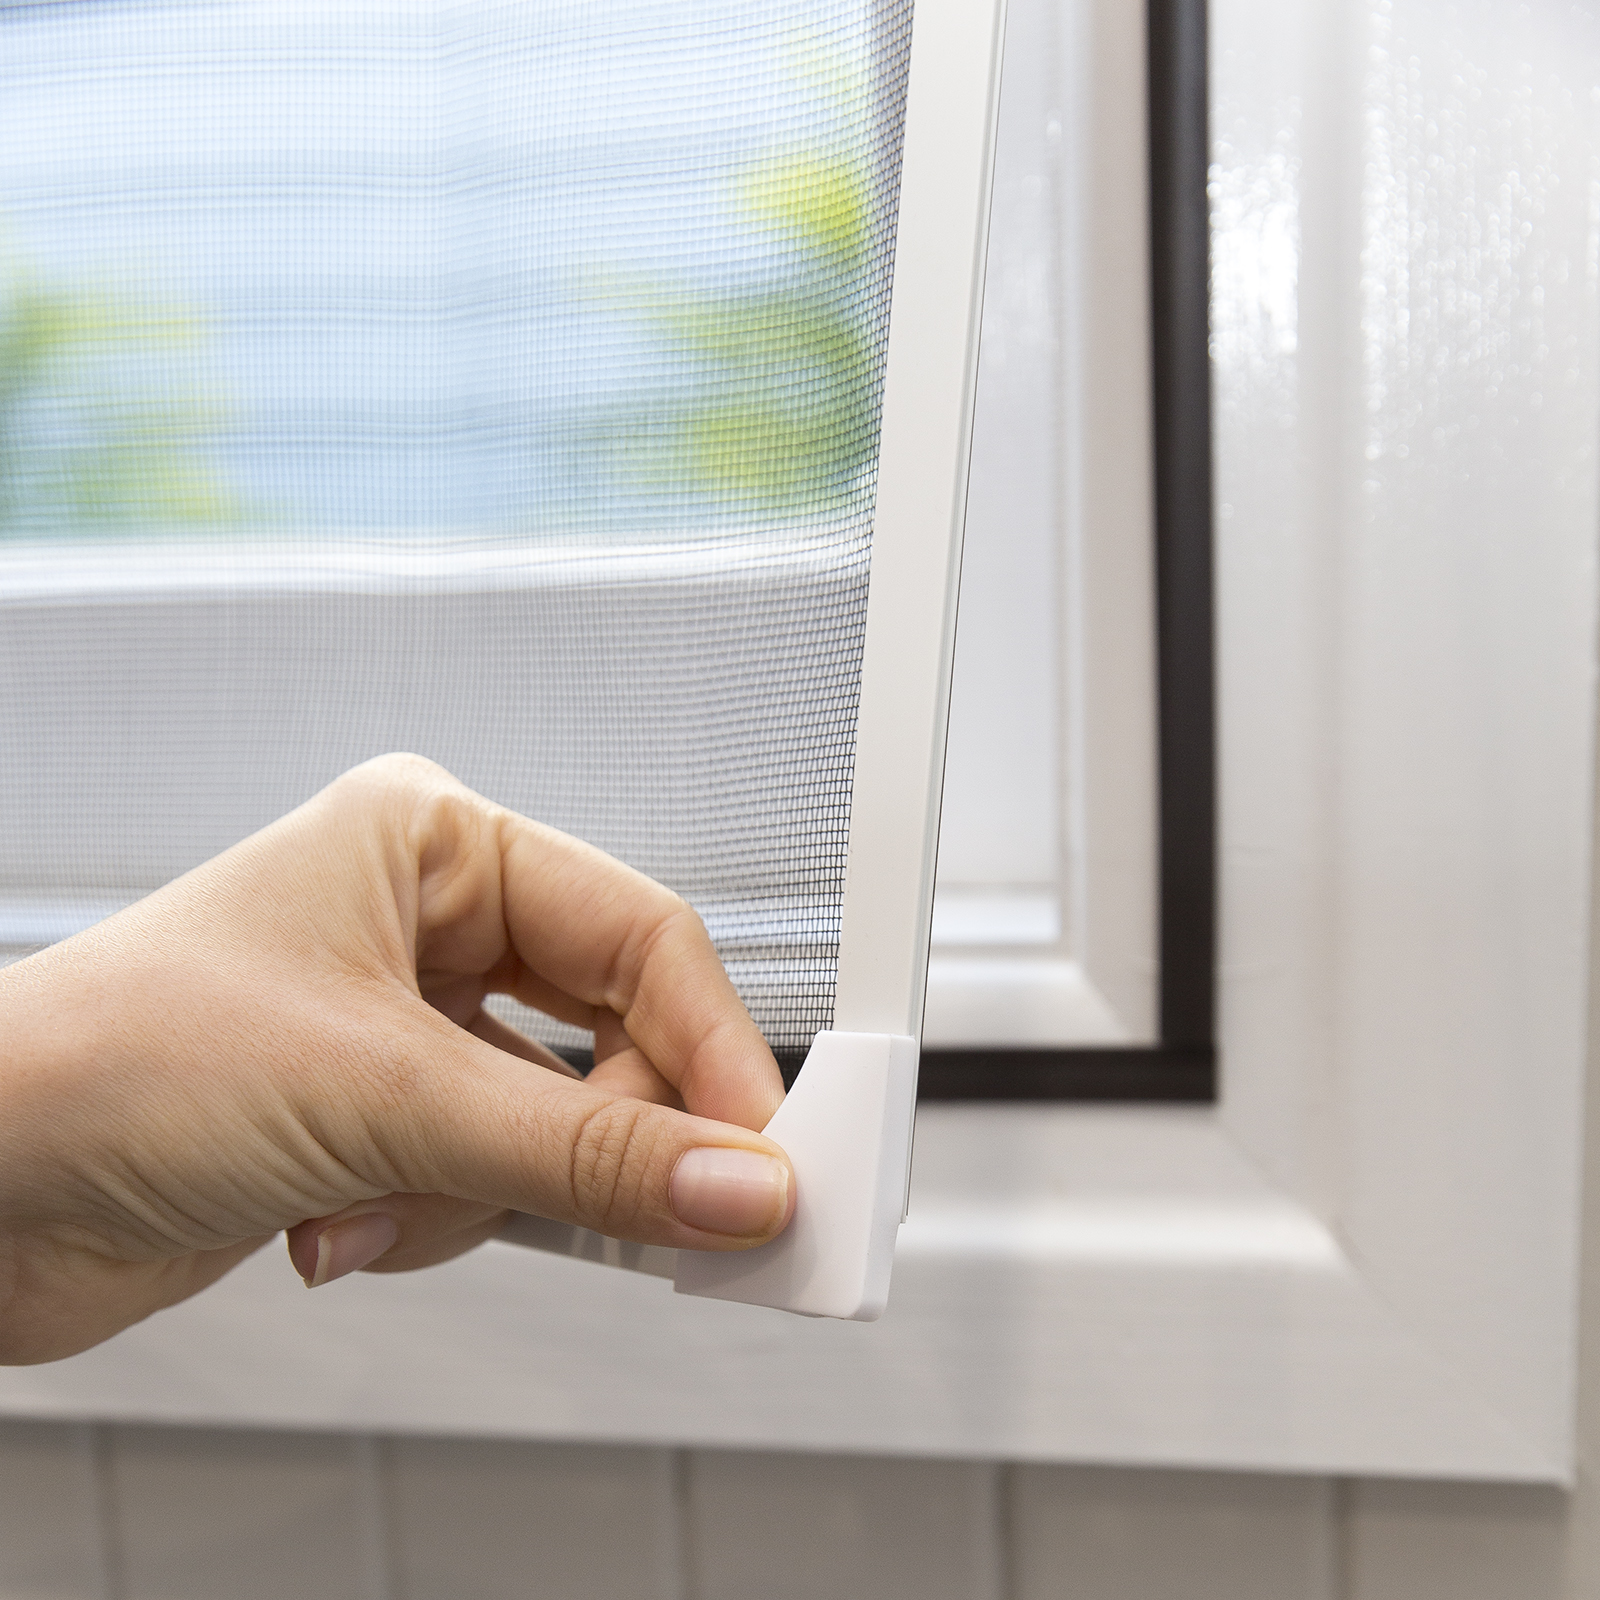 Diy magnetic fly screen easy to install free shipping worldwide cheapest diy window screens buy online cheapest diy window screens buy online solutioingenieria Images